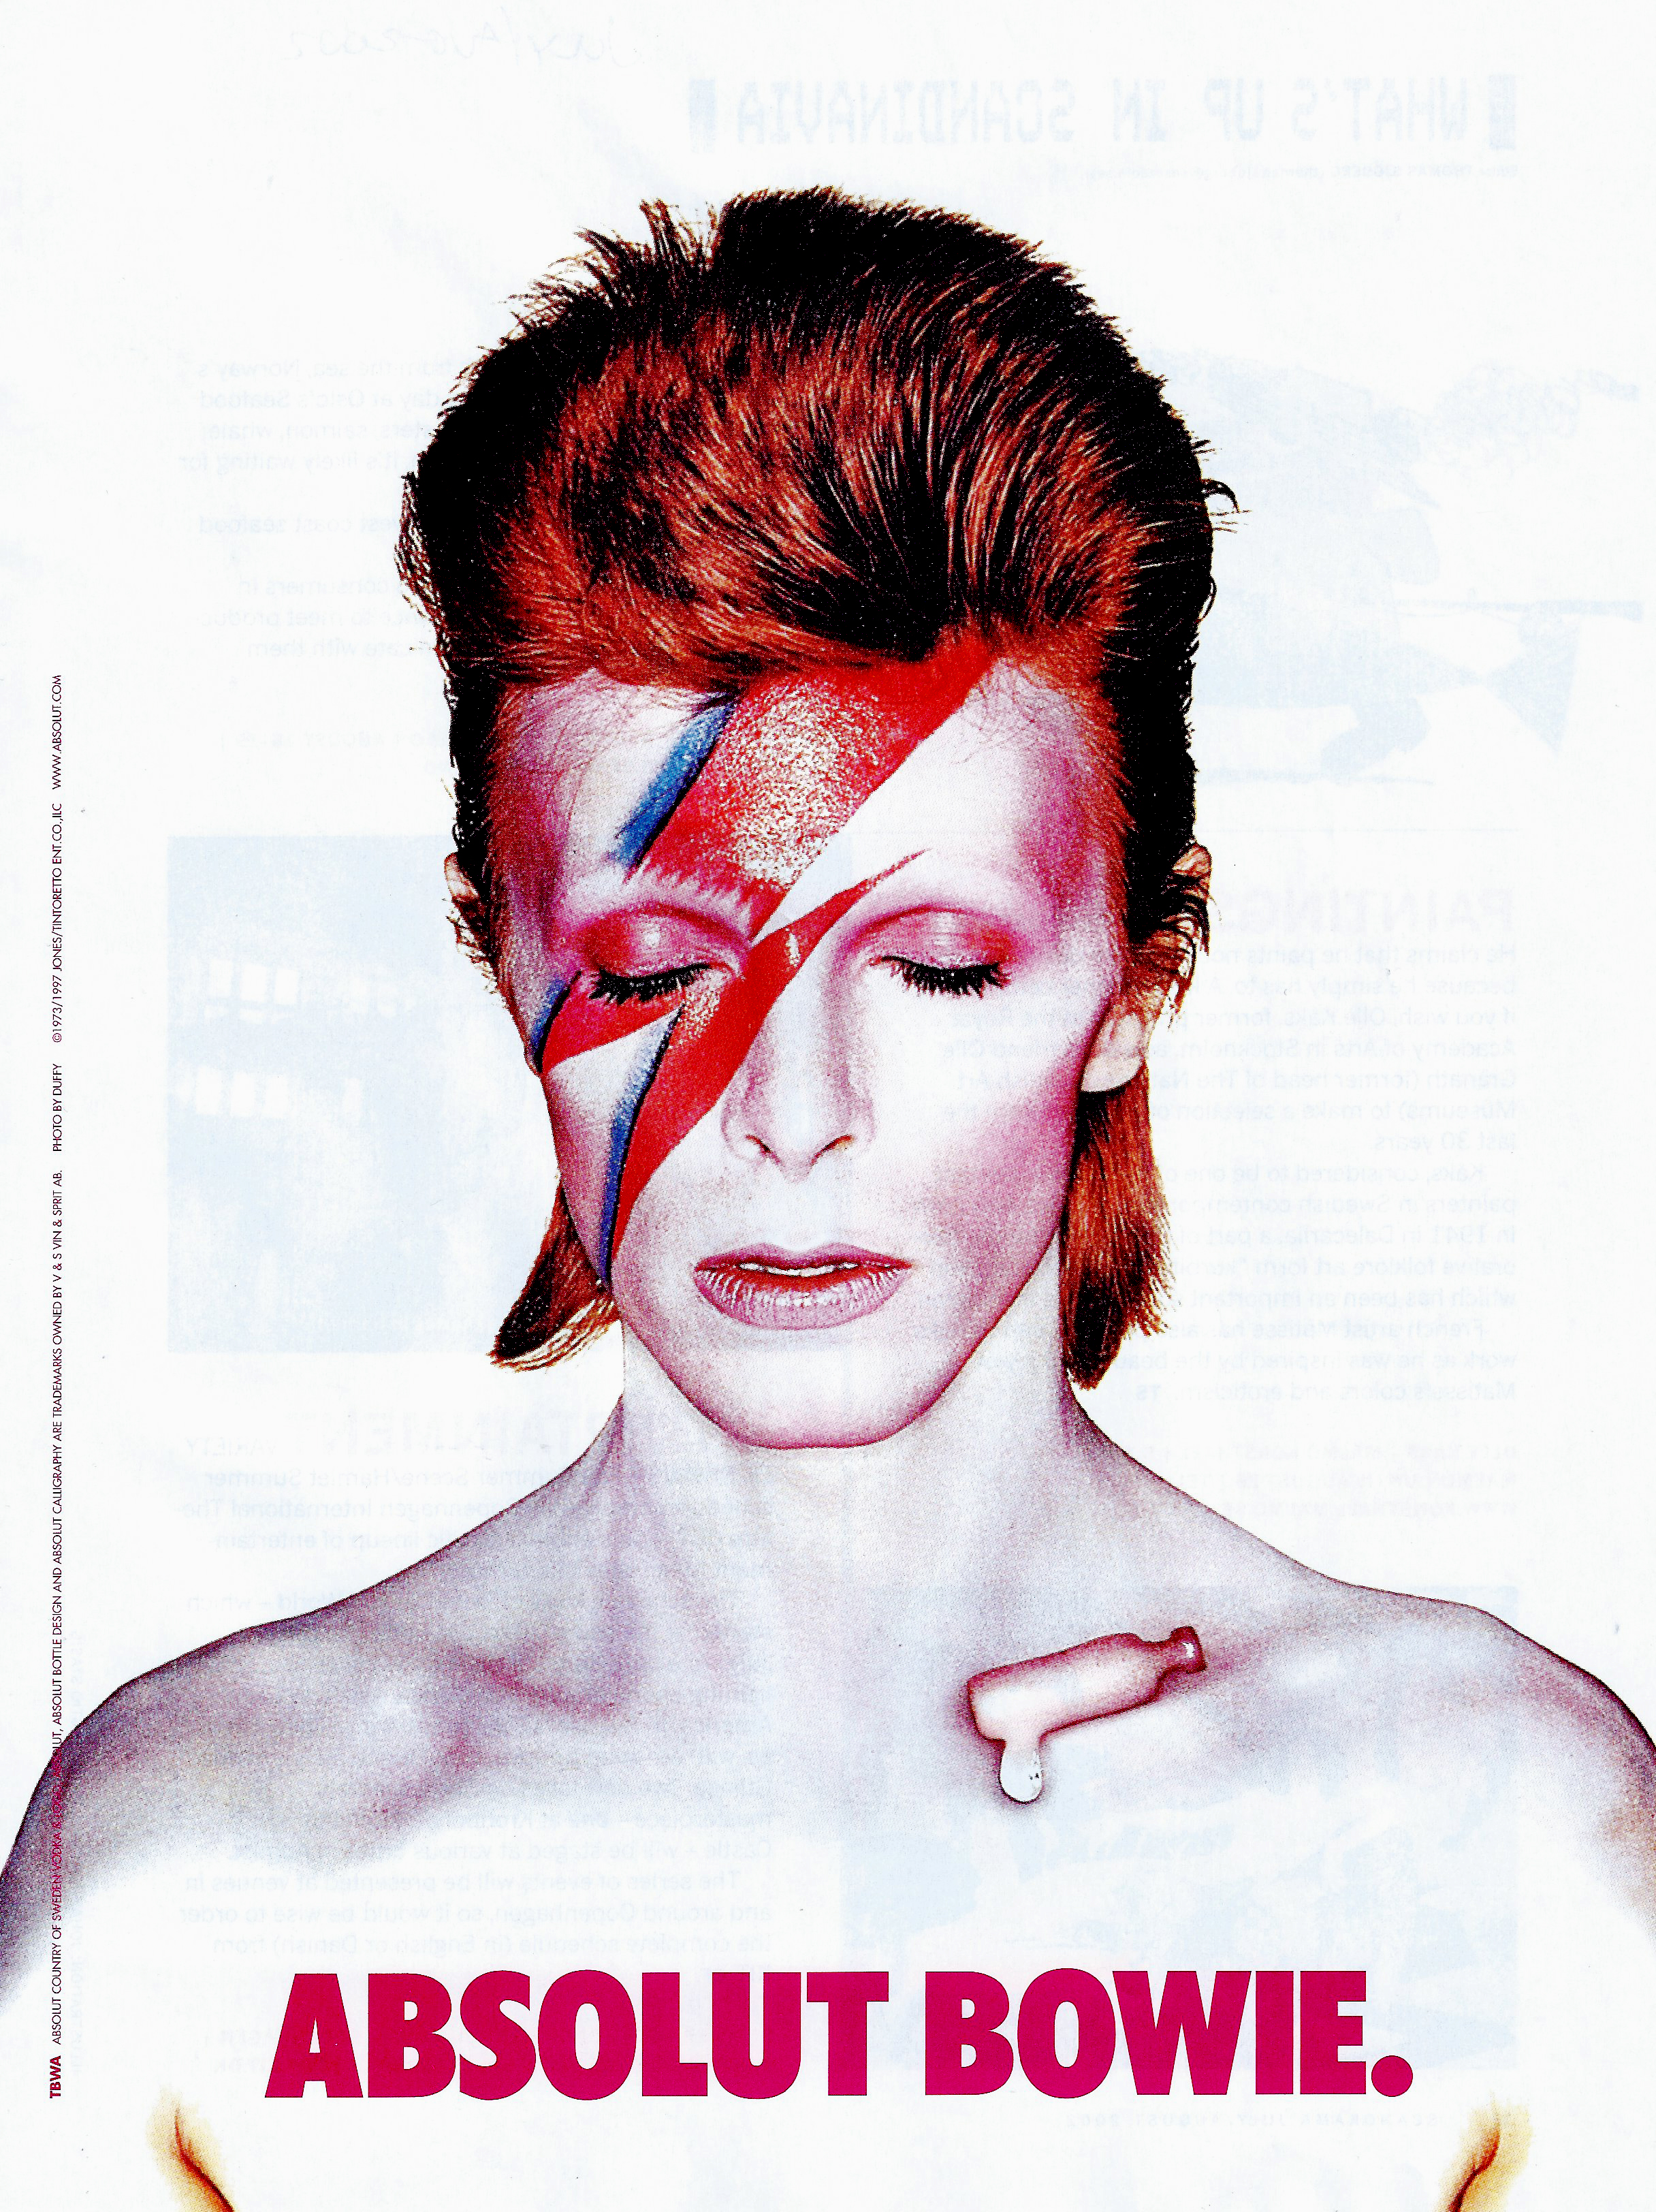 Absolut Bowie.